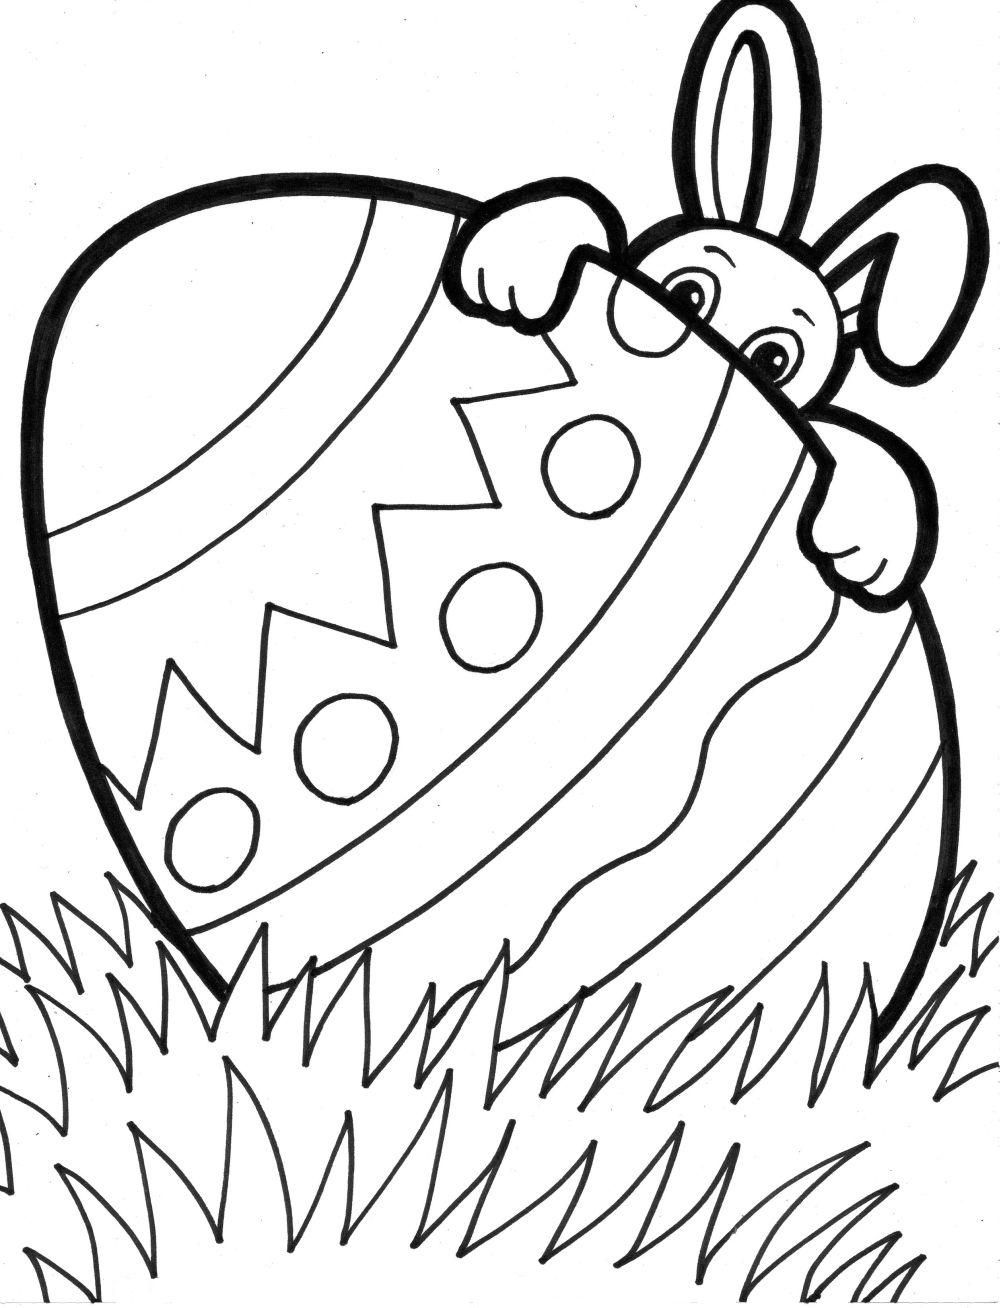 Free Easter Printable Coloring Pages For Kids Games And Wallpaper Free Easter Coloring Pages Easter Coloring Pages Printable Easter Bunny Colouring